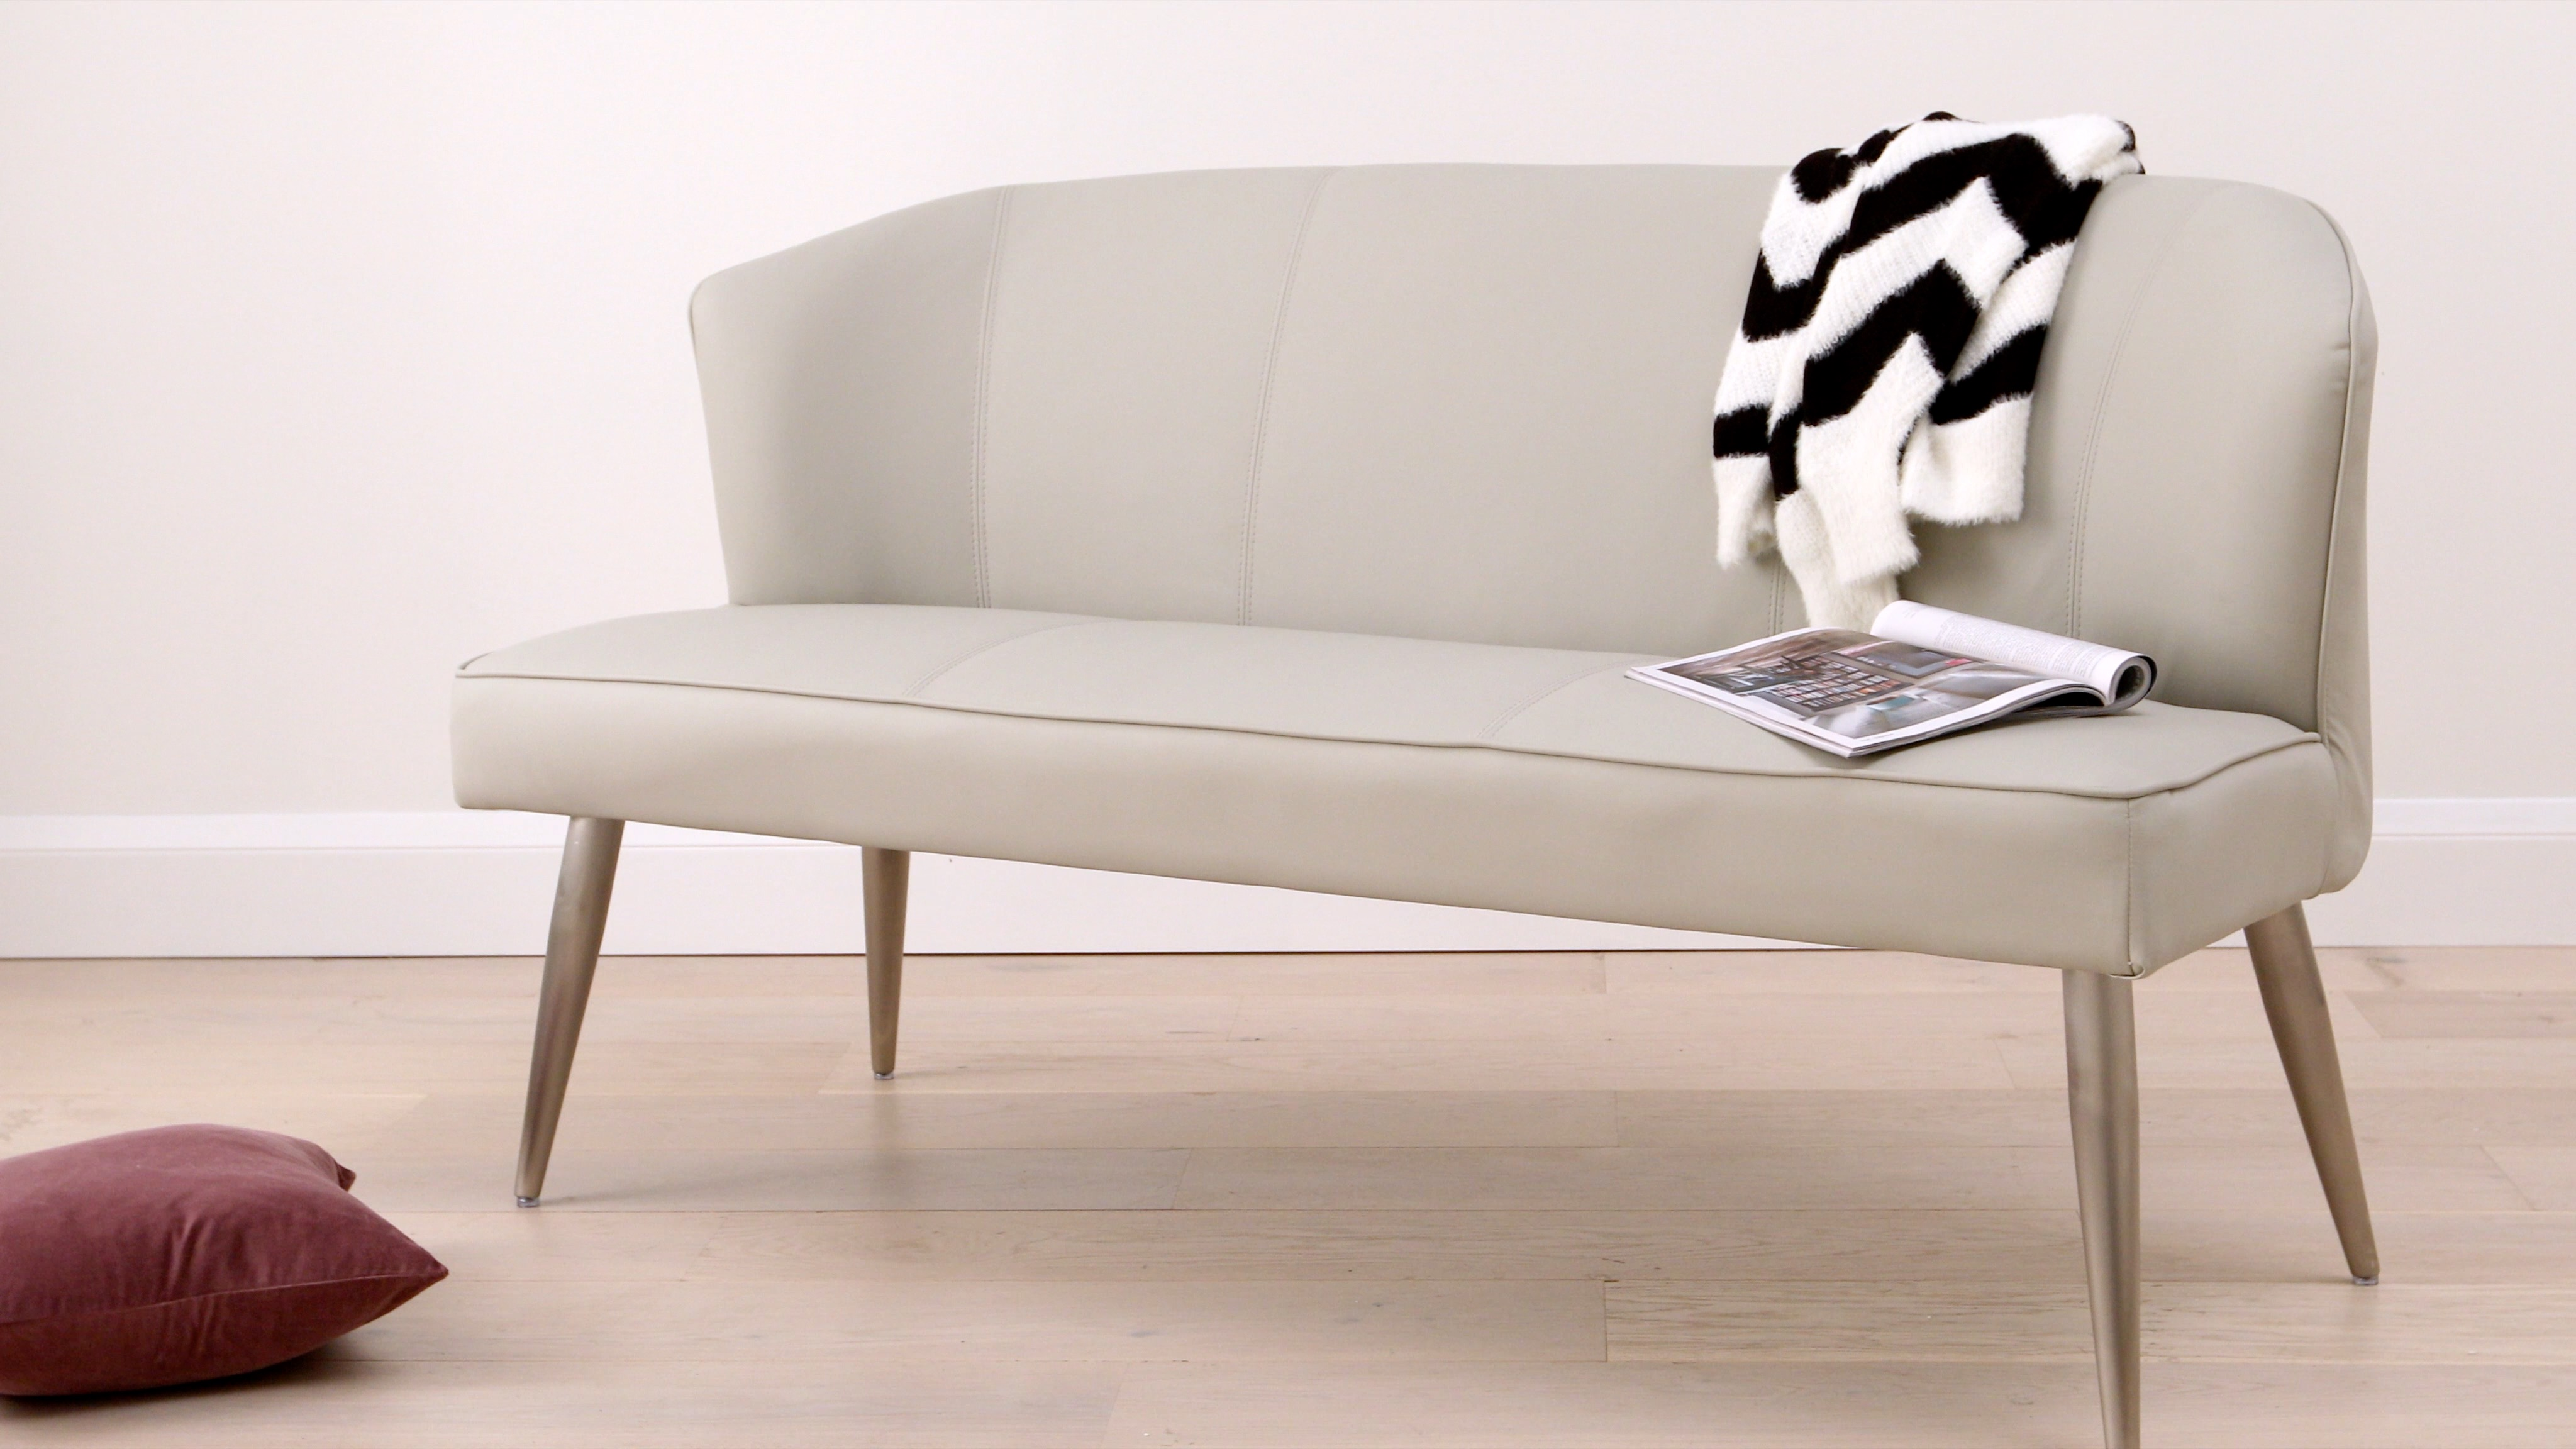 Awe Inspiring Mellow 3 Seater Dining Bench With Back Danetti Andrewgaddart Wooden Chair Designs For Living Room Andrewgaddartcom